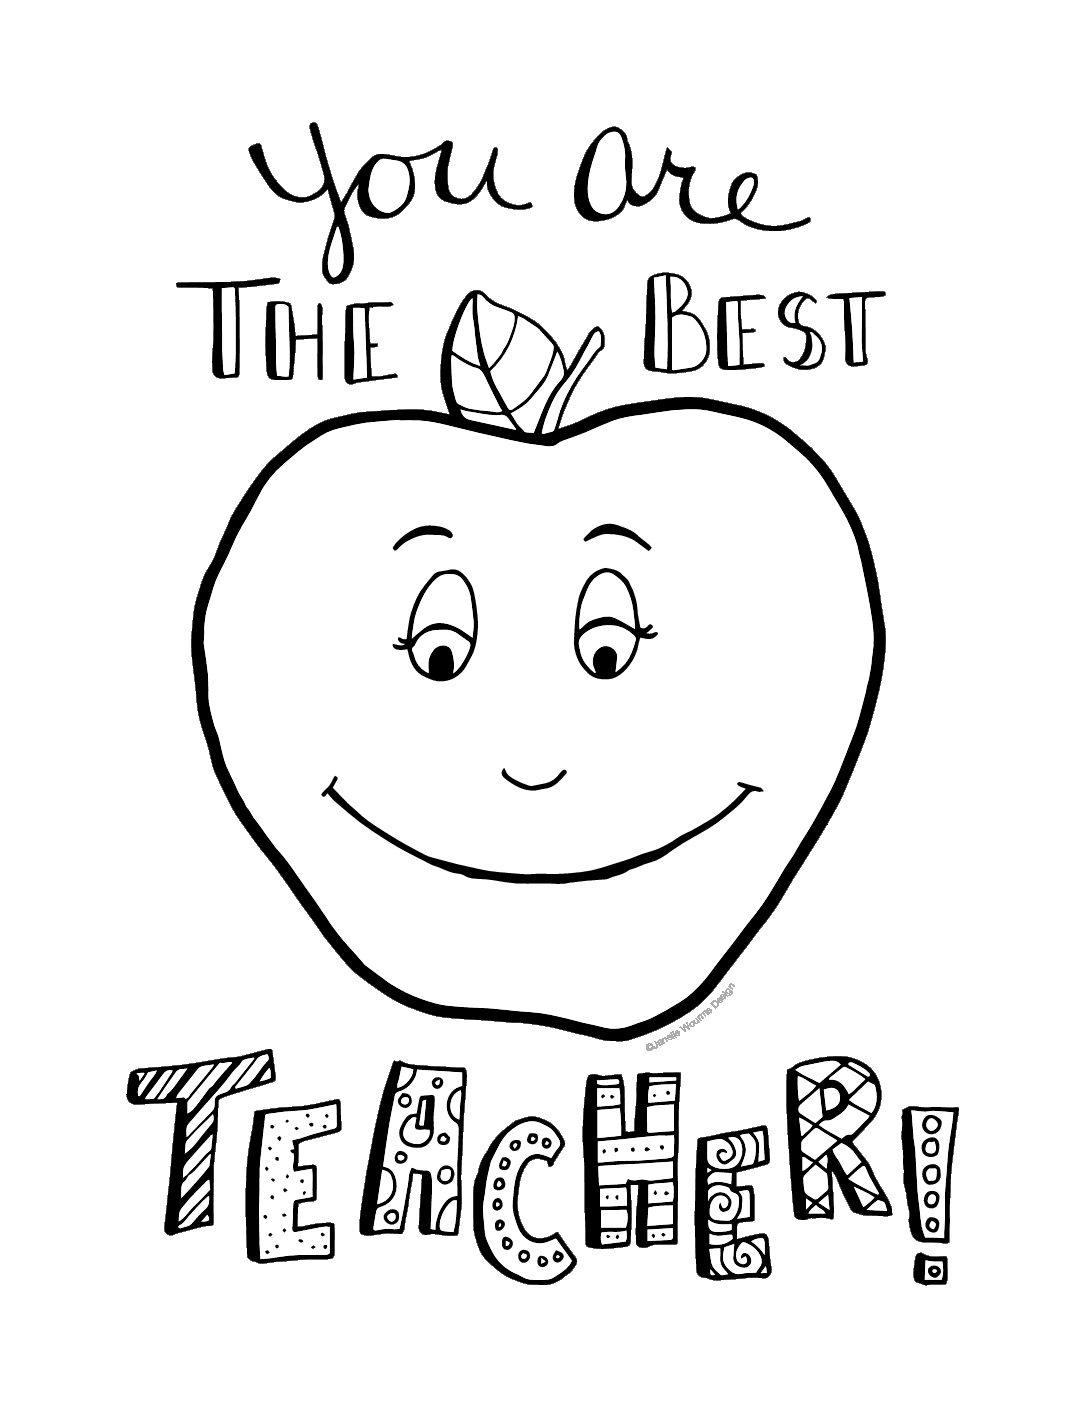 The Best Teacher Teacher Appreciation Coloring Page ...